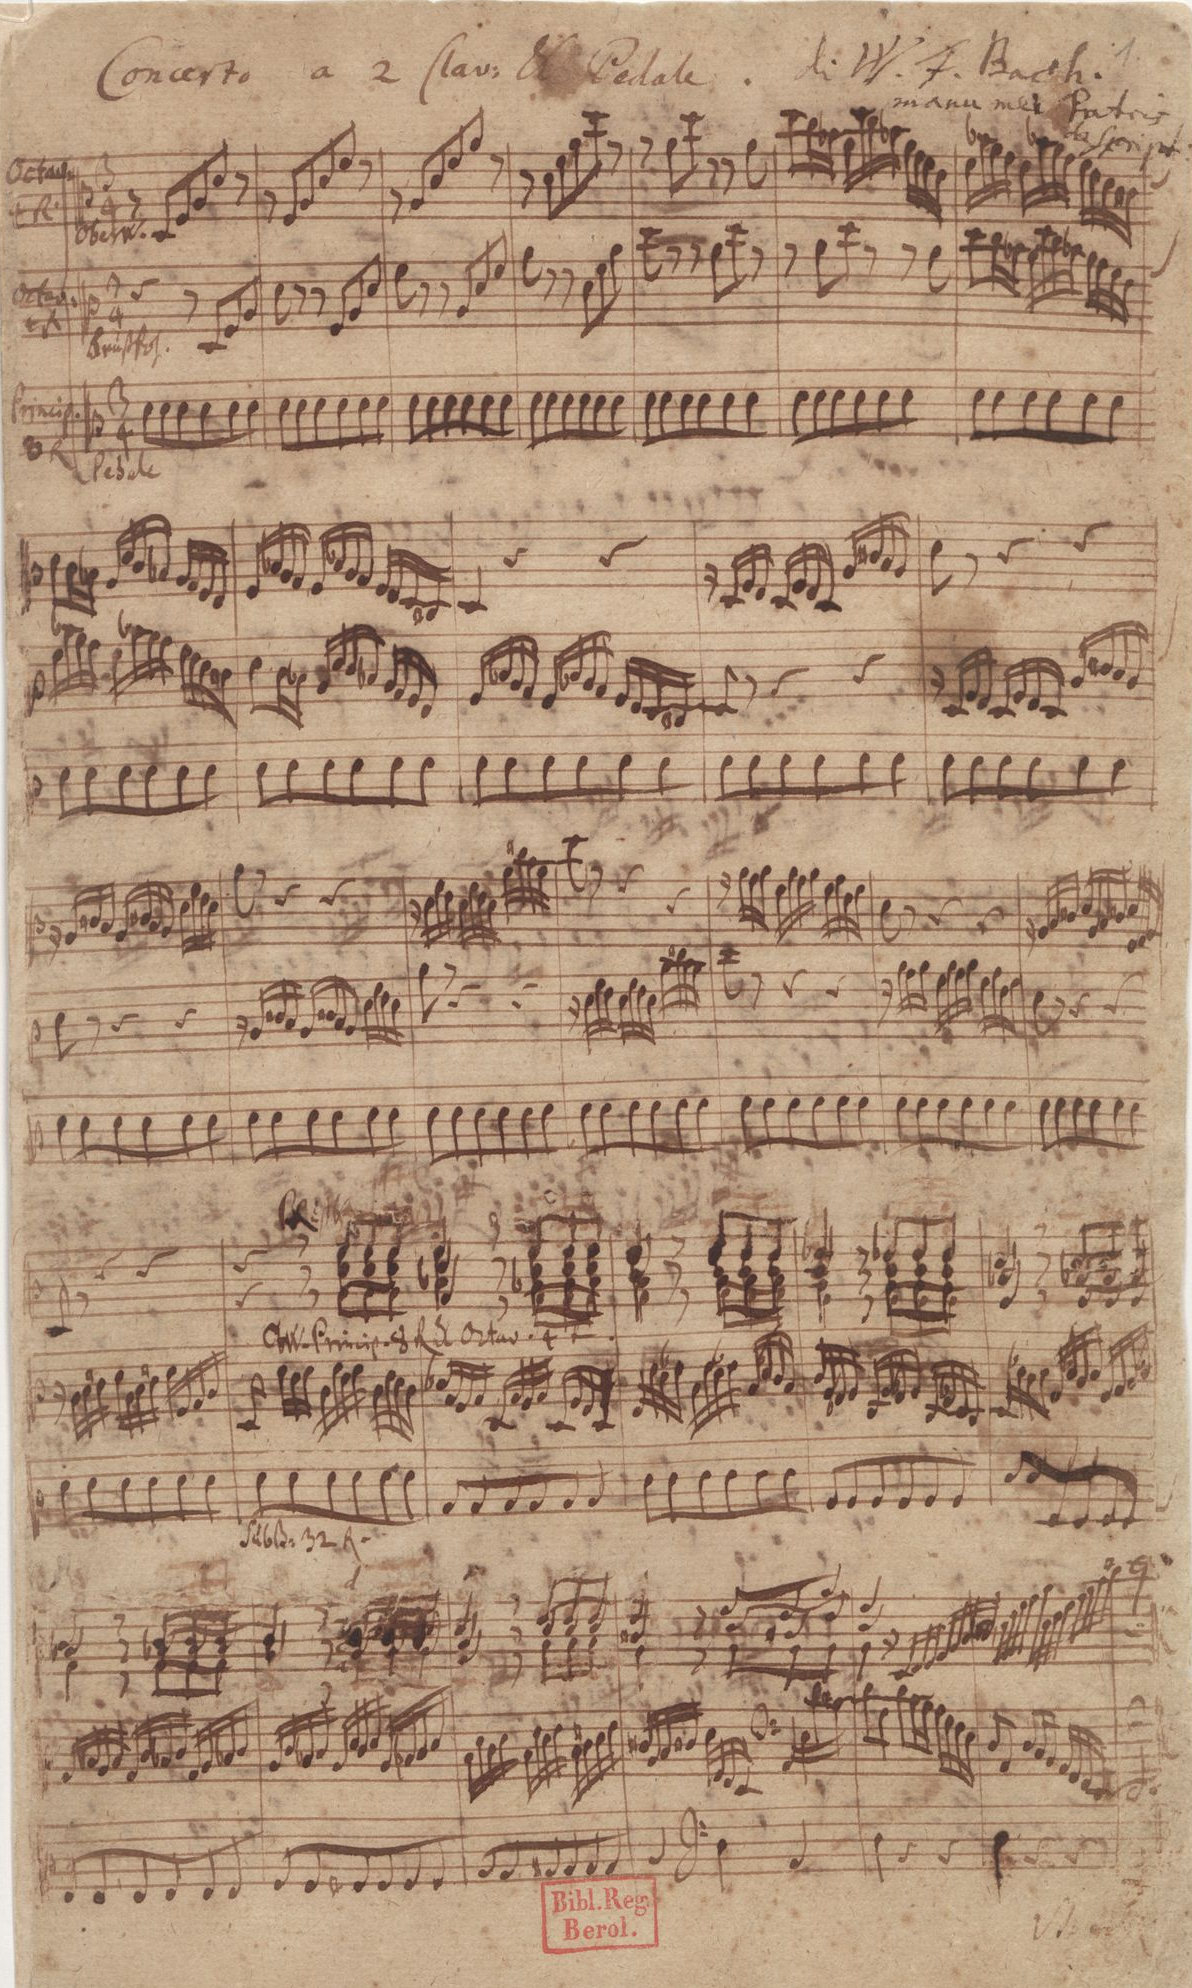 Weimar concerto transcriptions (Bach) - Wikipedia